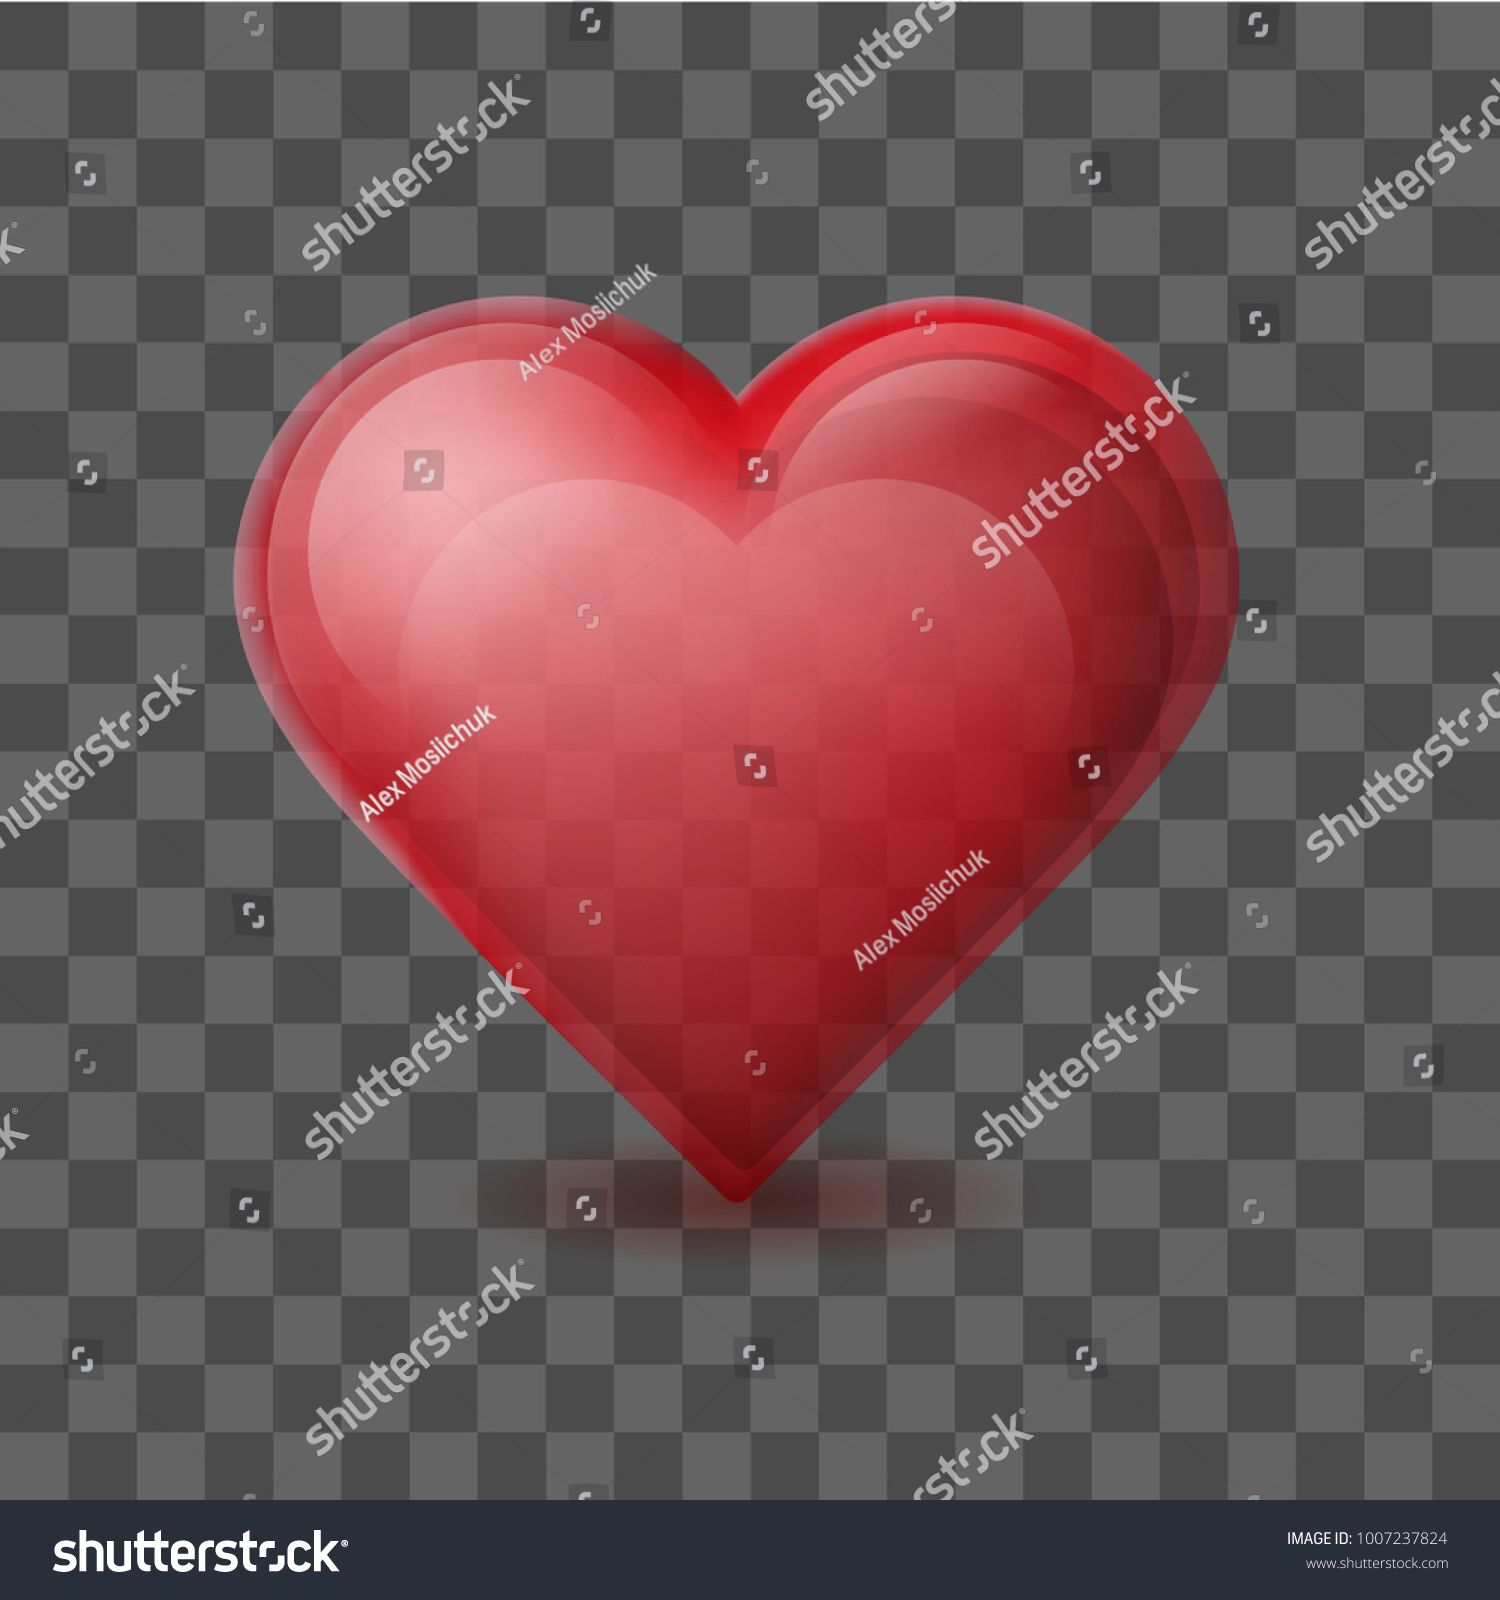 Red Heart On Background With The Transparent Effect Glossy Crystal